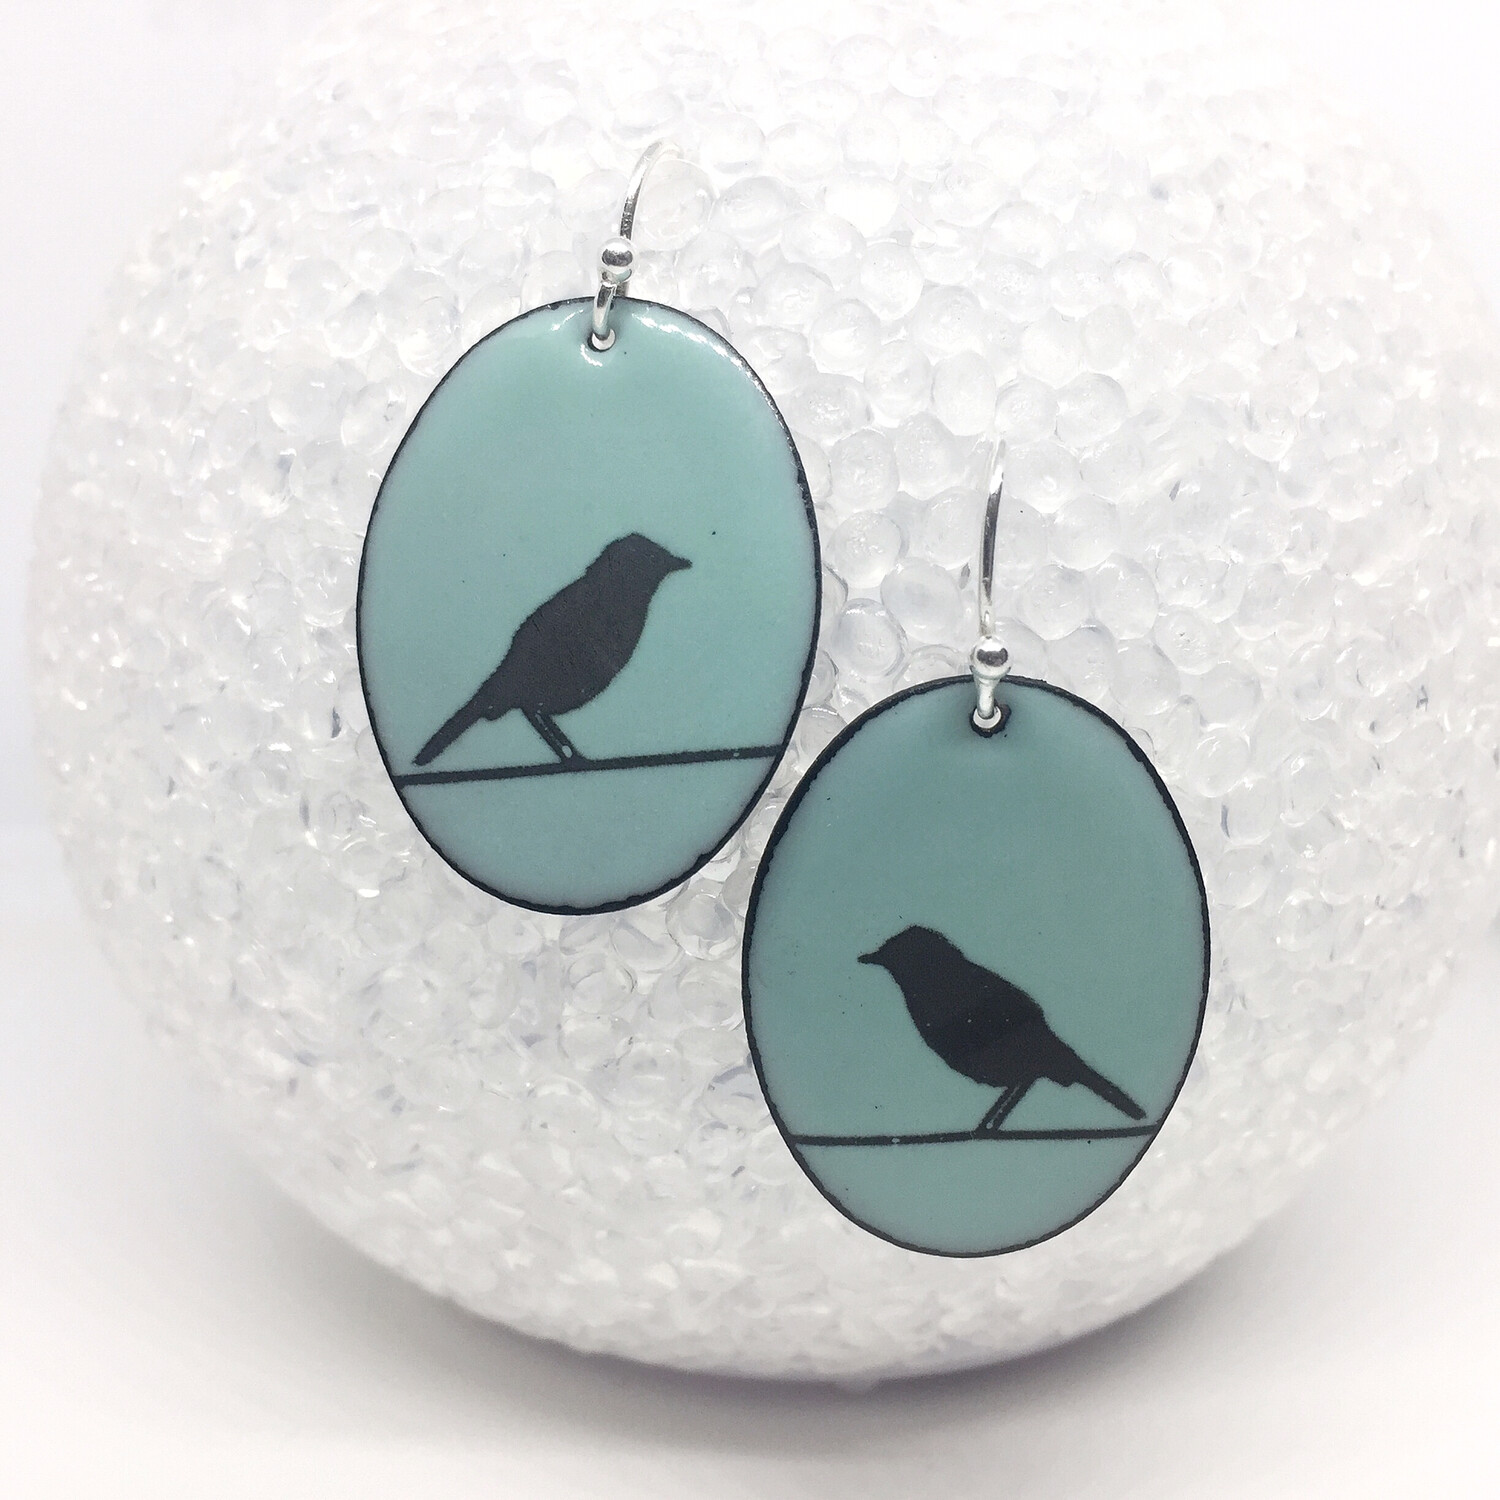 Enamel Earrings, Bird on a wire